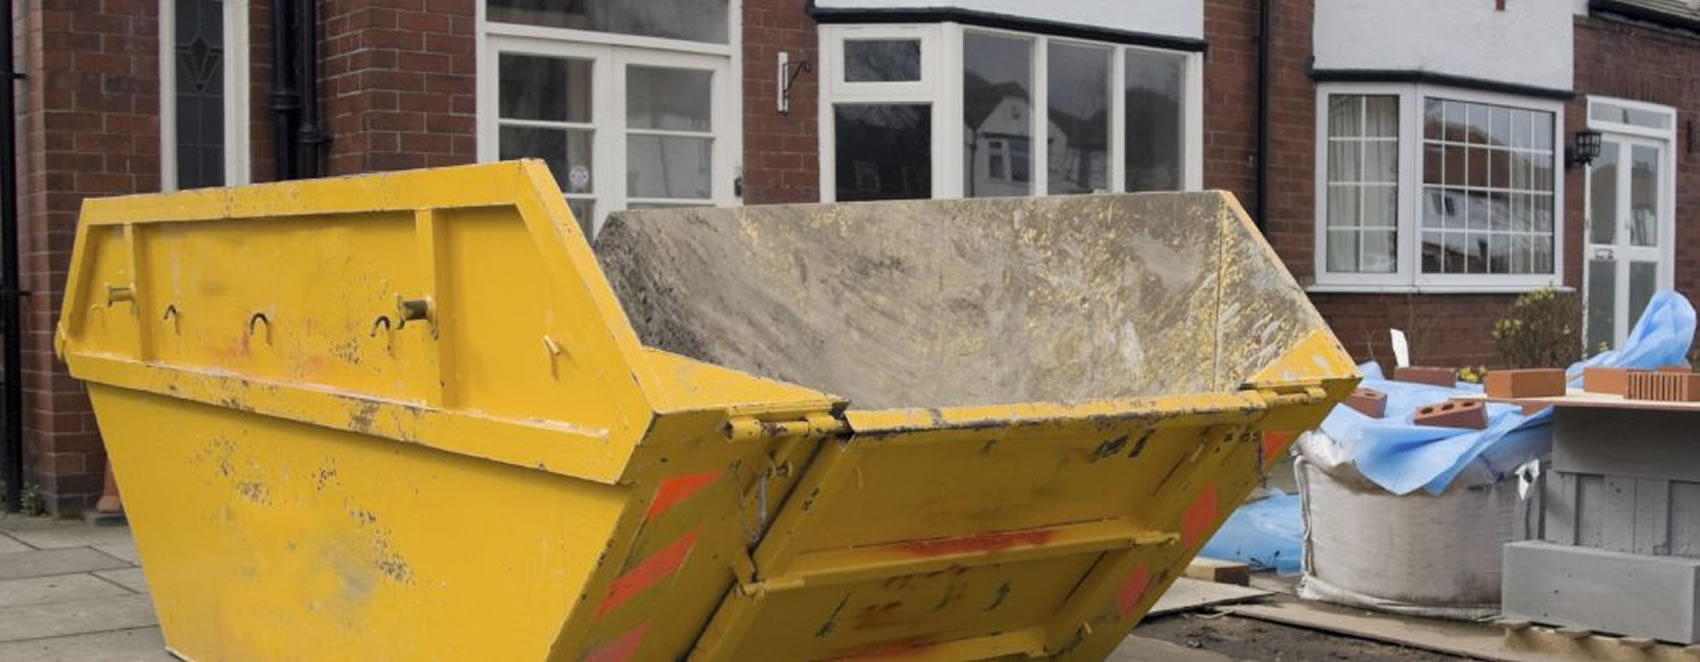 Domestic and Commercial Skip Hire Services Kelso